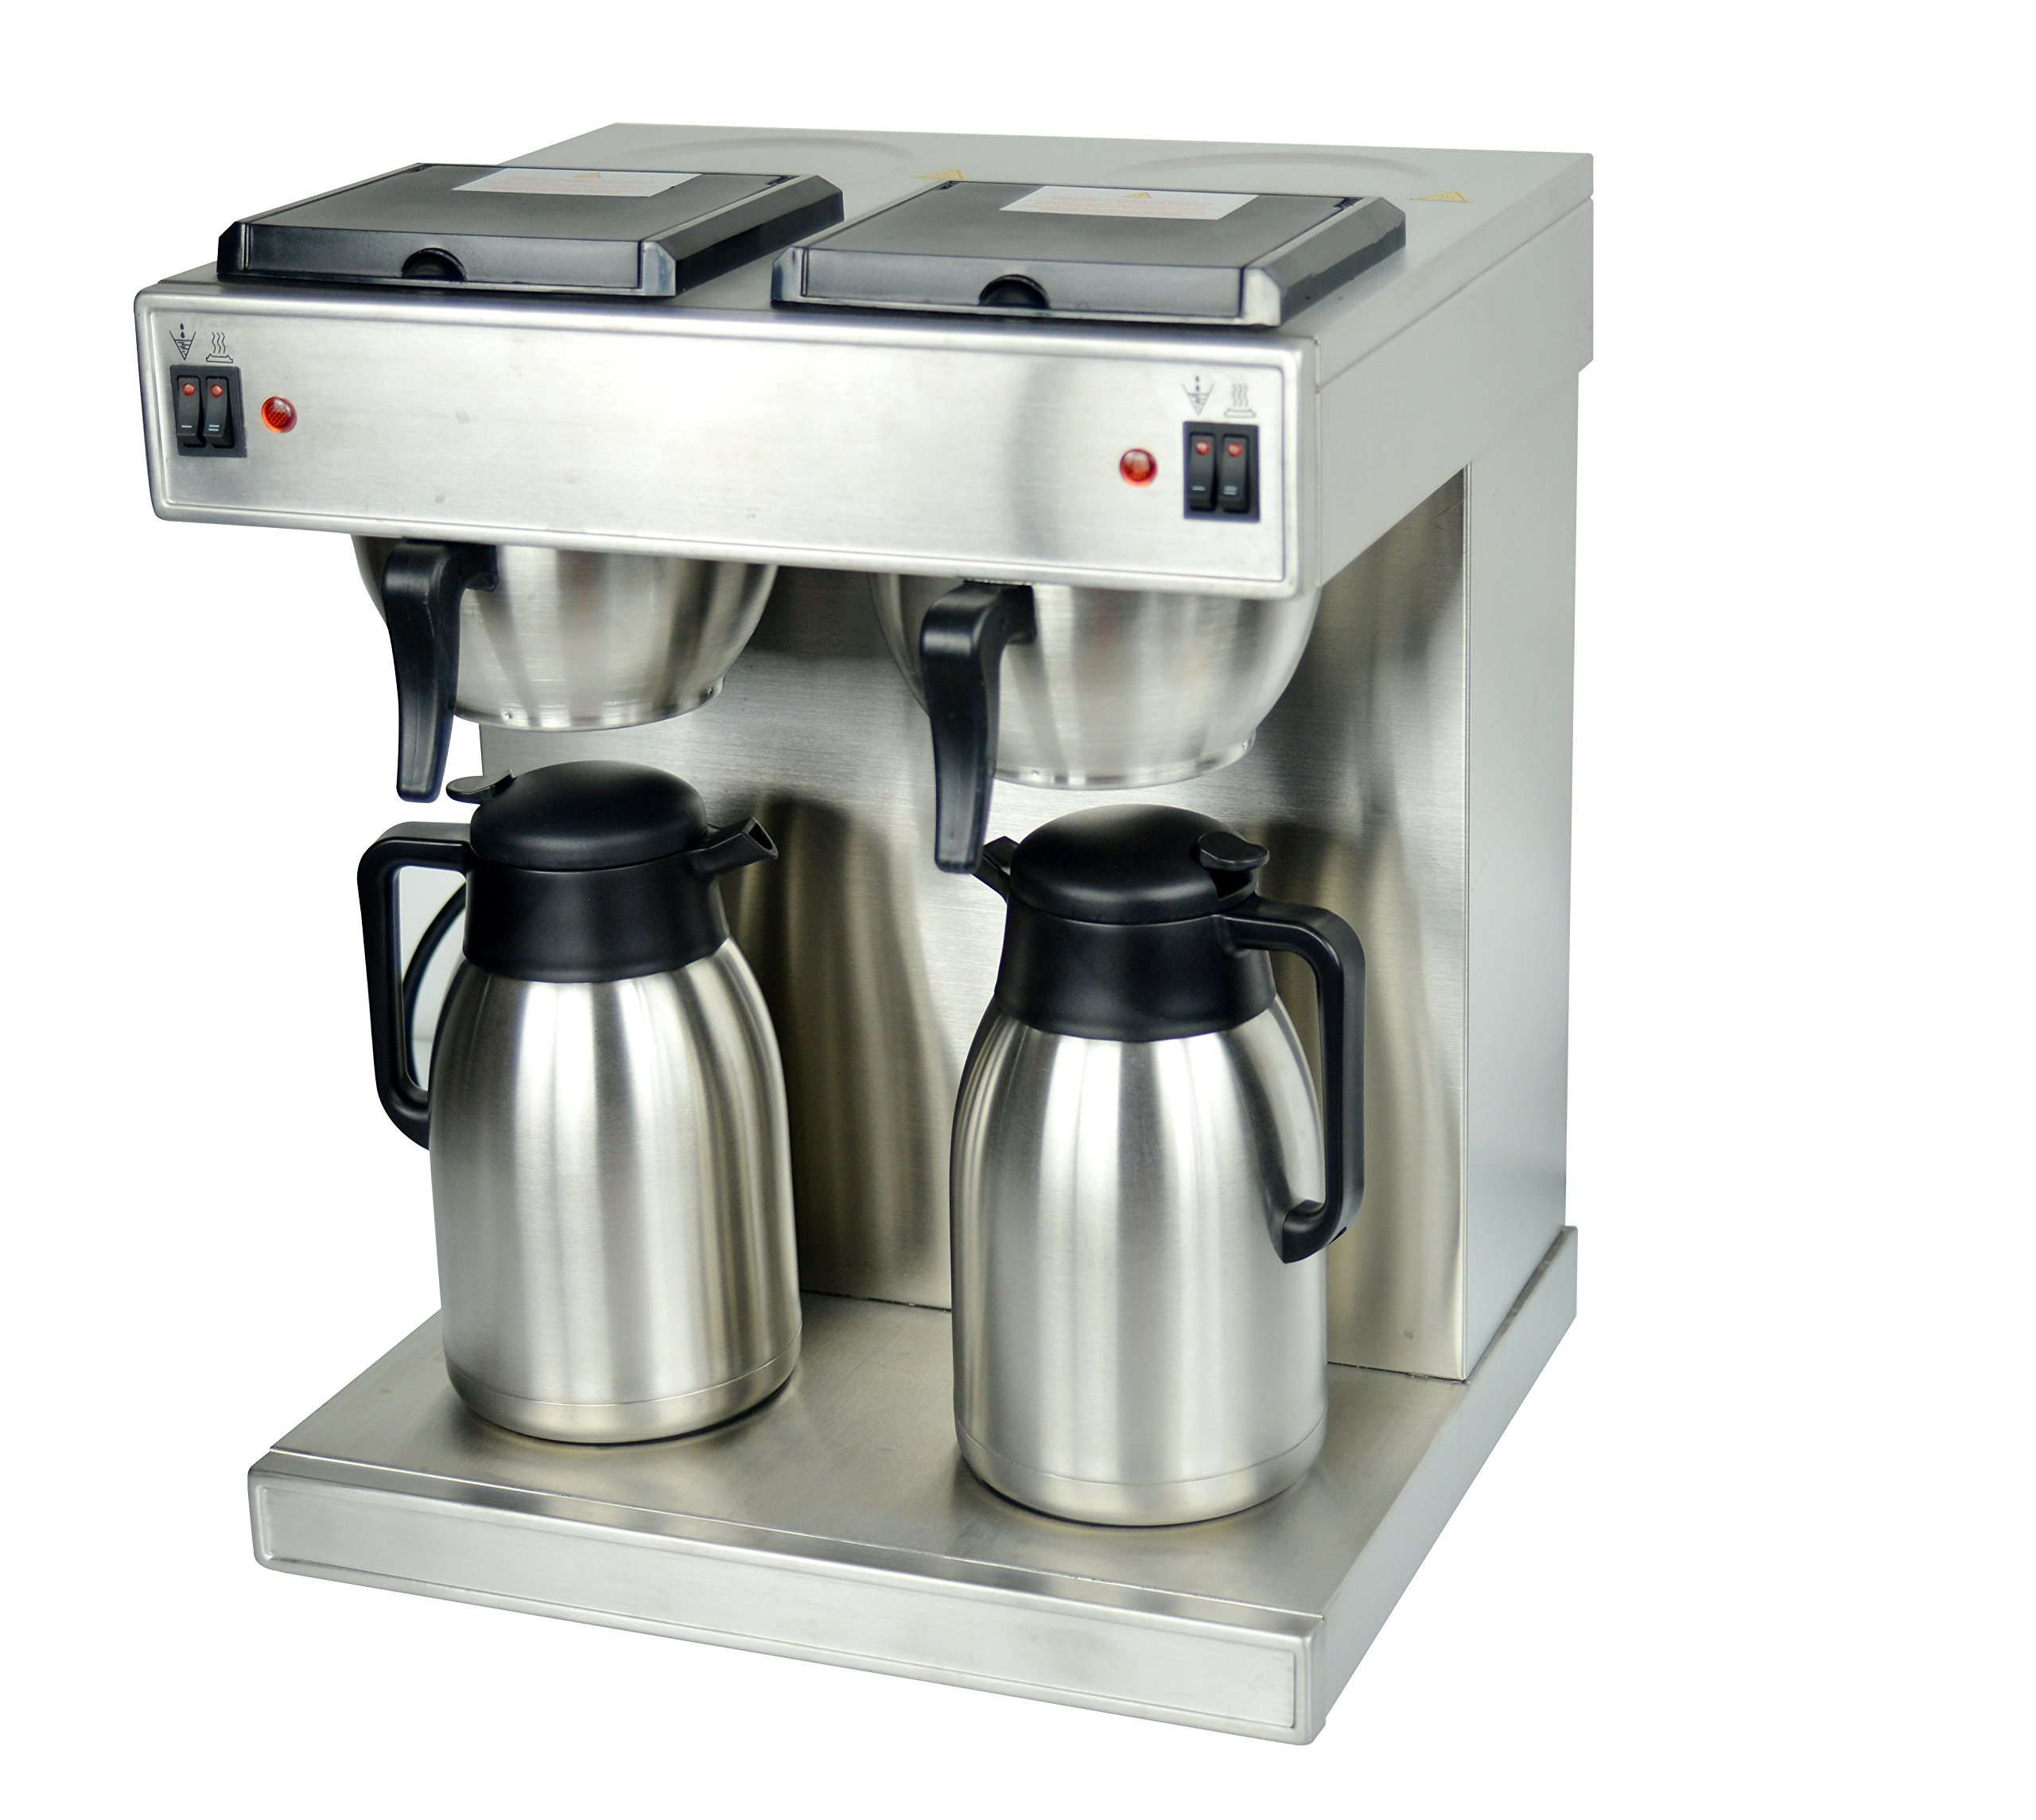 Hakka Commercial Pour Over Air Pot Coffee Brewer and Coffee Maker (220V/60Hz,Plug Exchangeable)